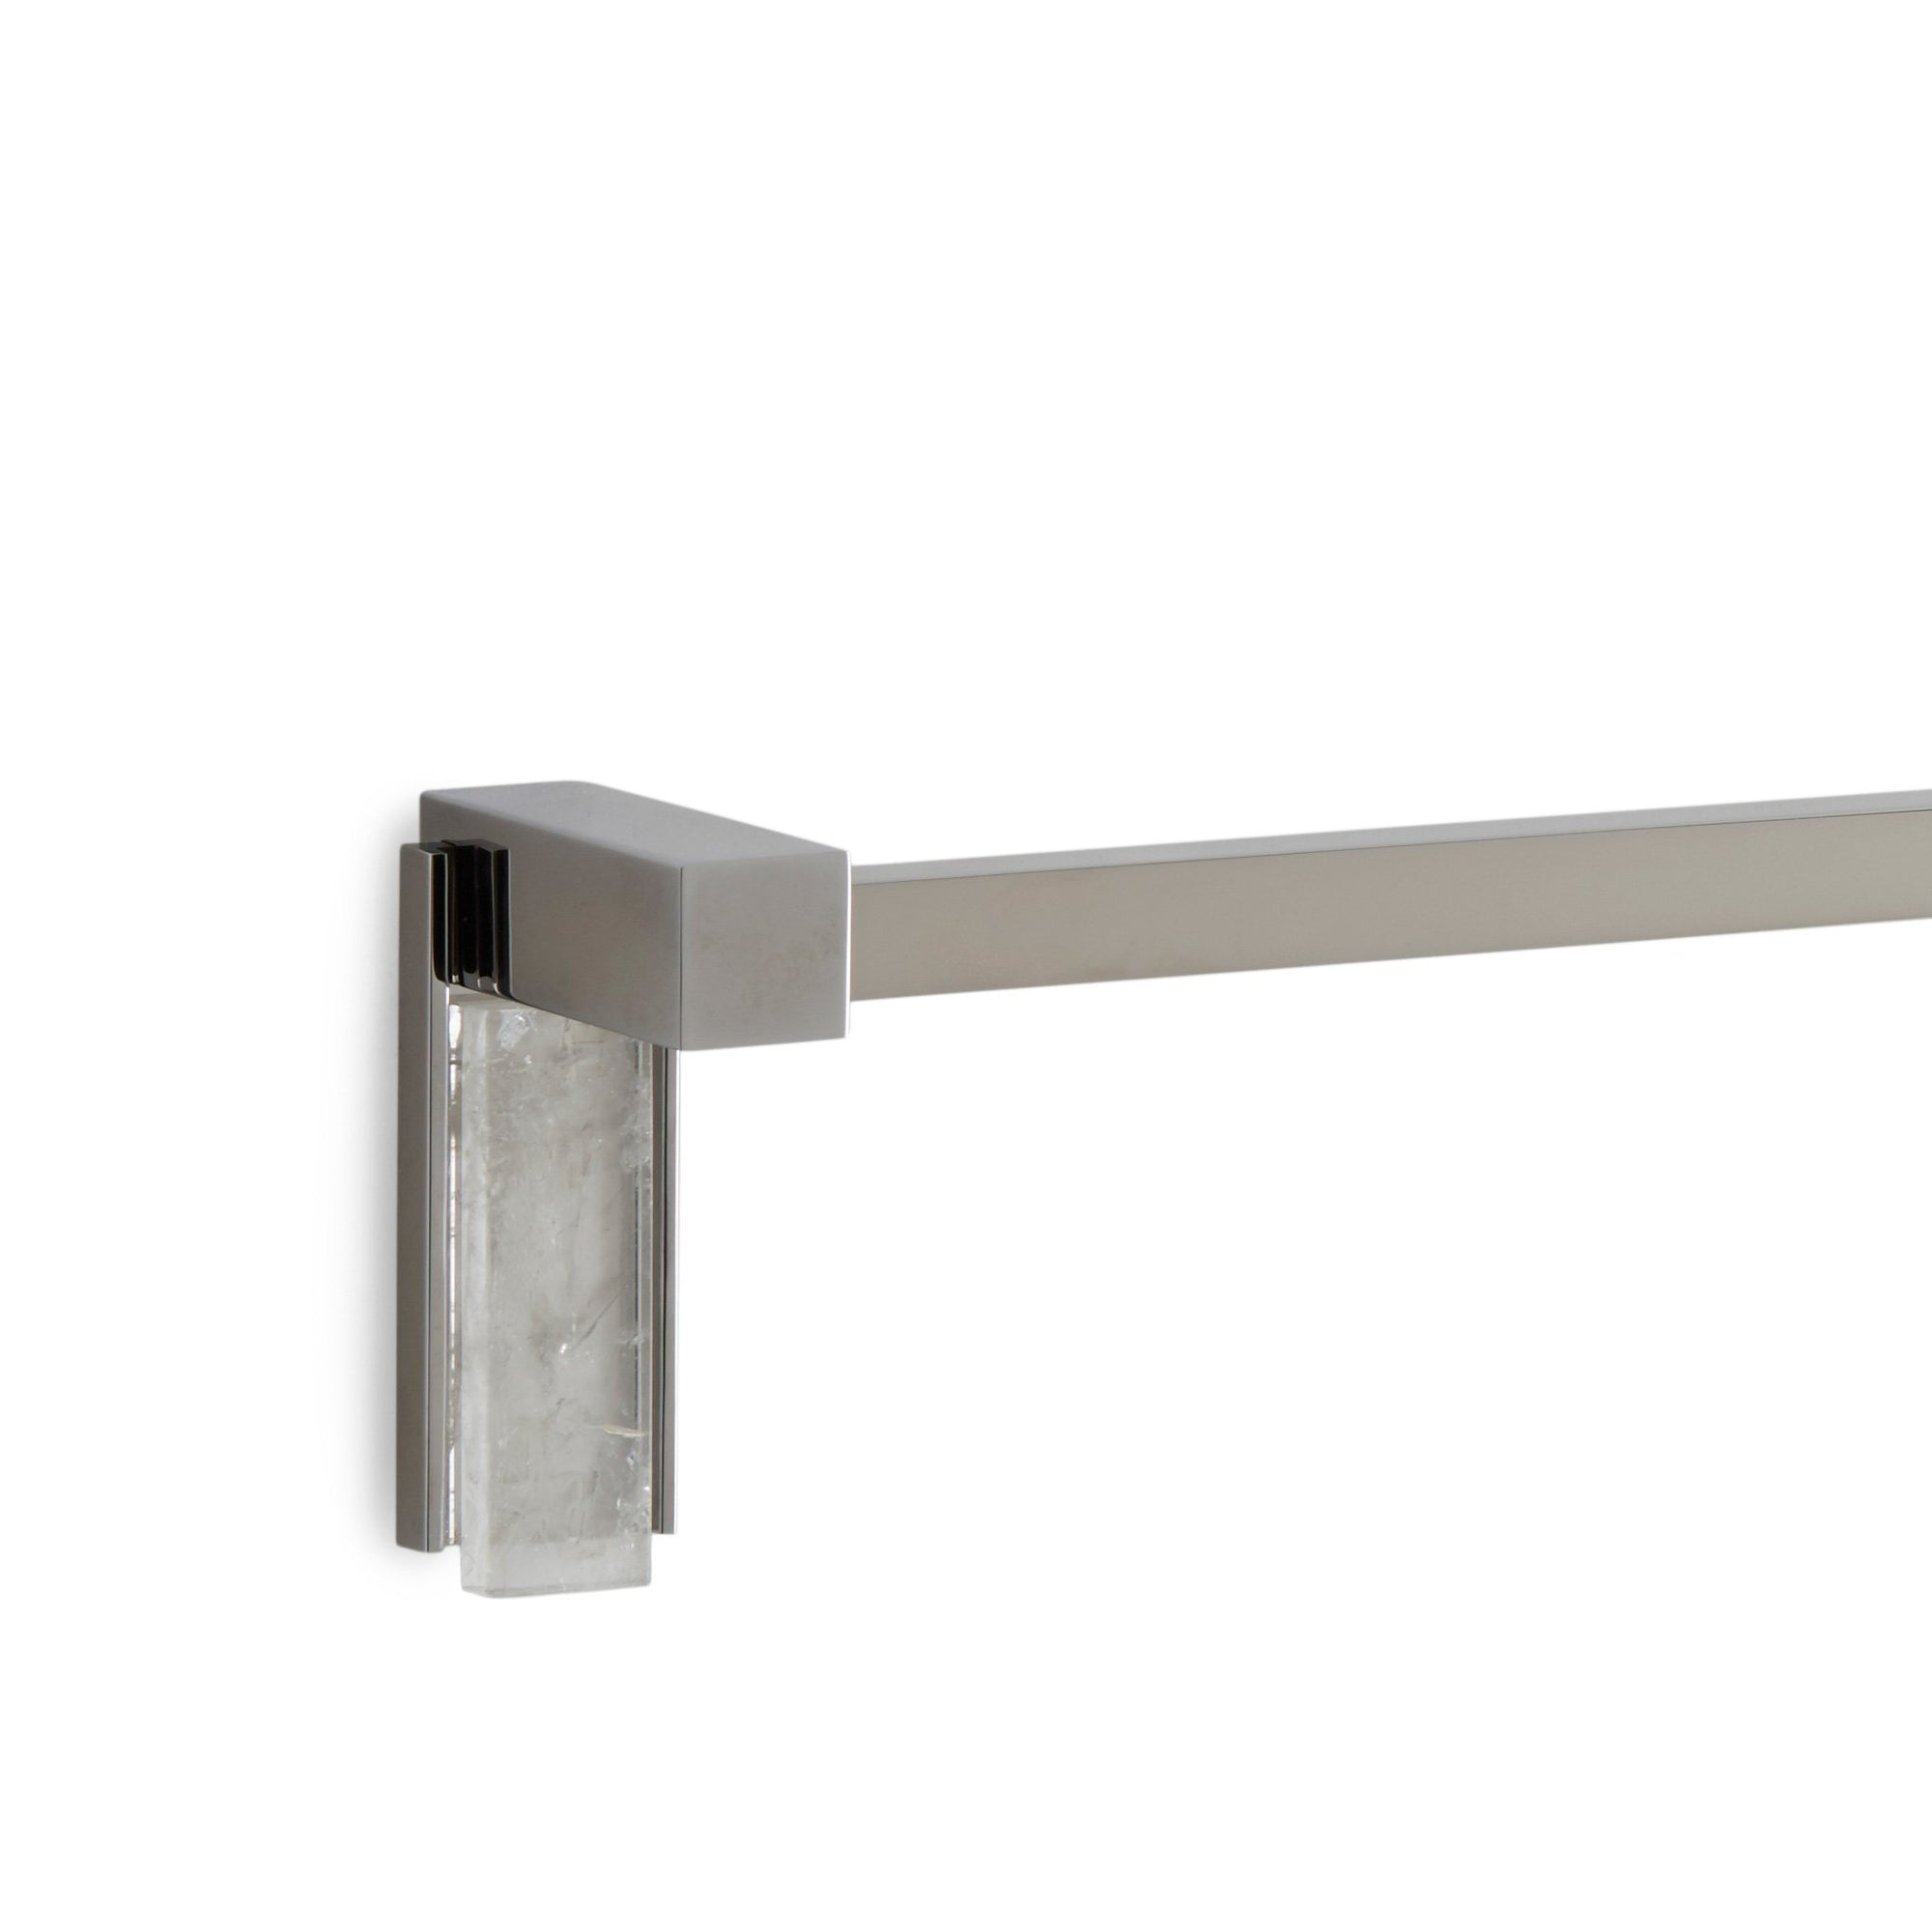 3678-RKCR-30SQ-CP Sherle Wagner International Apollo Towel Bar with Rock Crystal insert in Polished Chrome metal finish